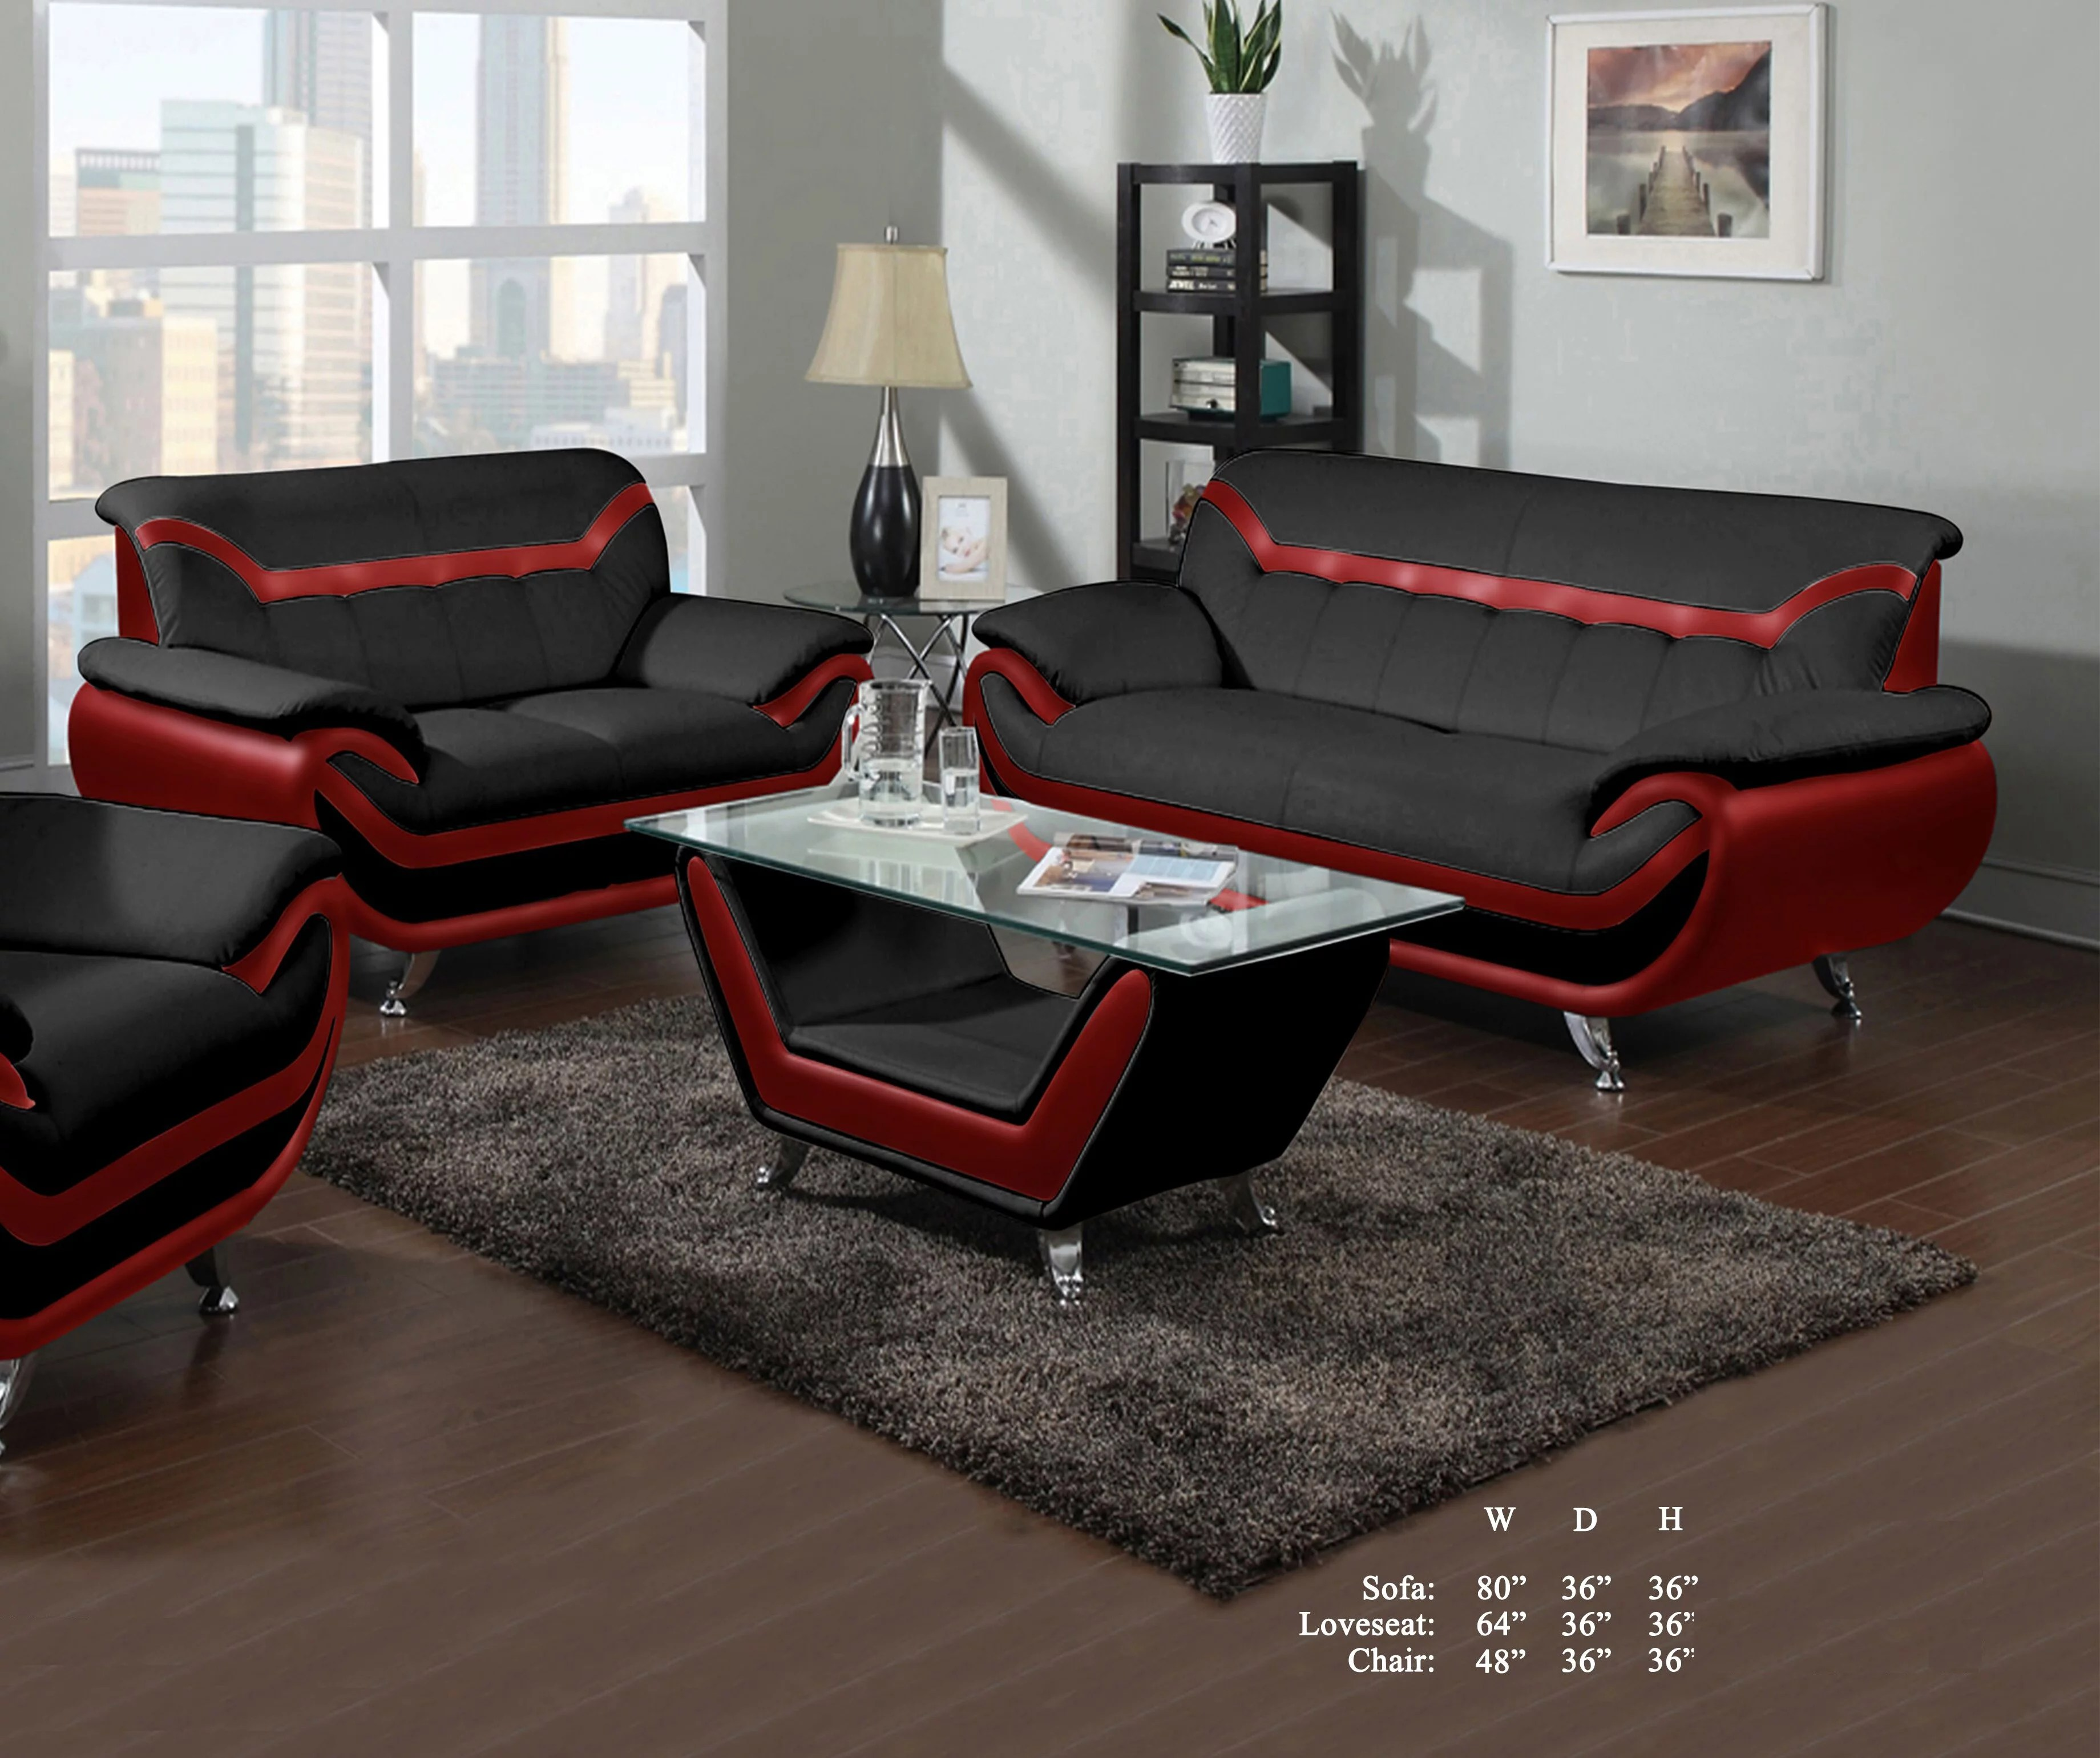 beautiful lovely comfort classic red black bonded leather sofa loveseat 2pc sofa set living room furniture plush couch walmart com